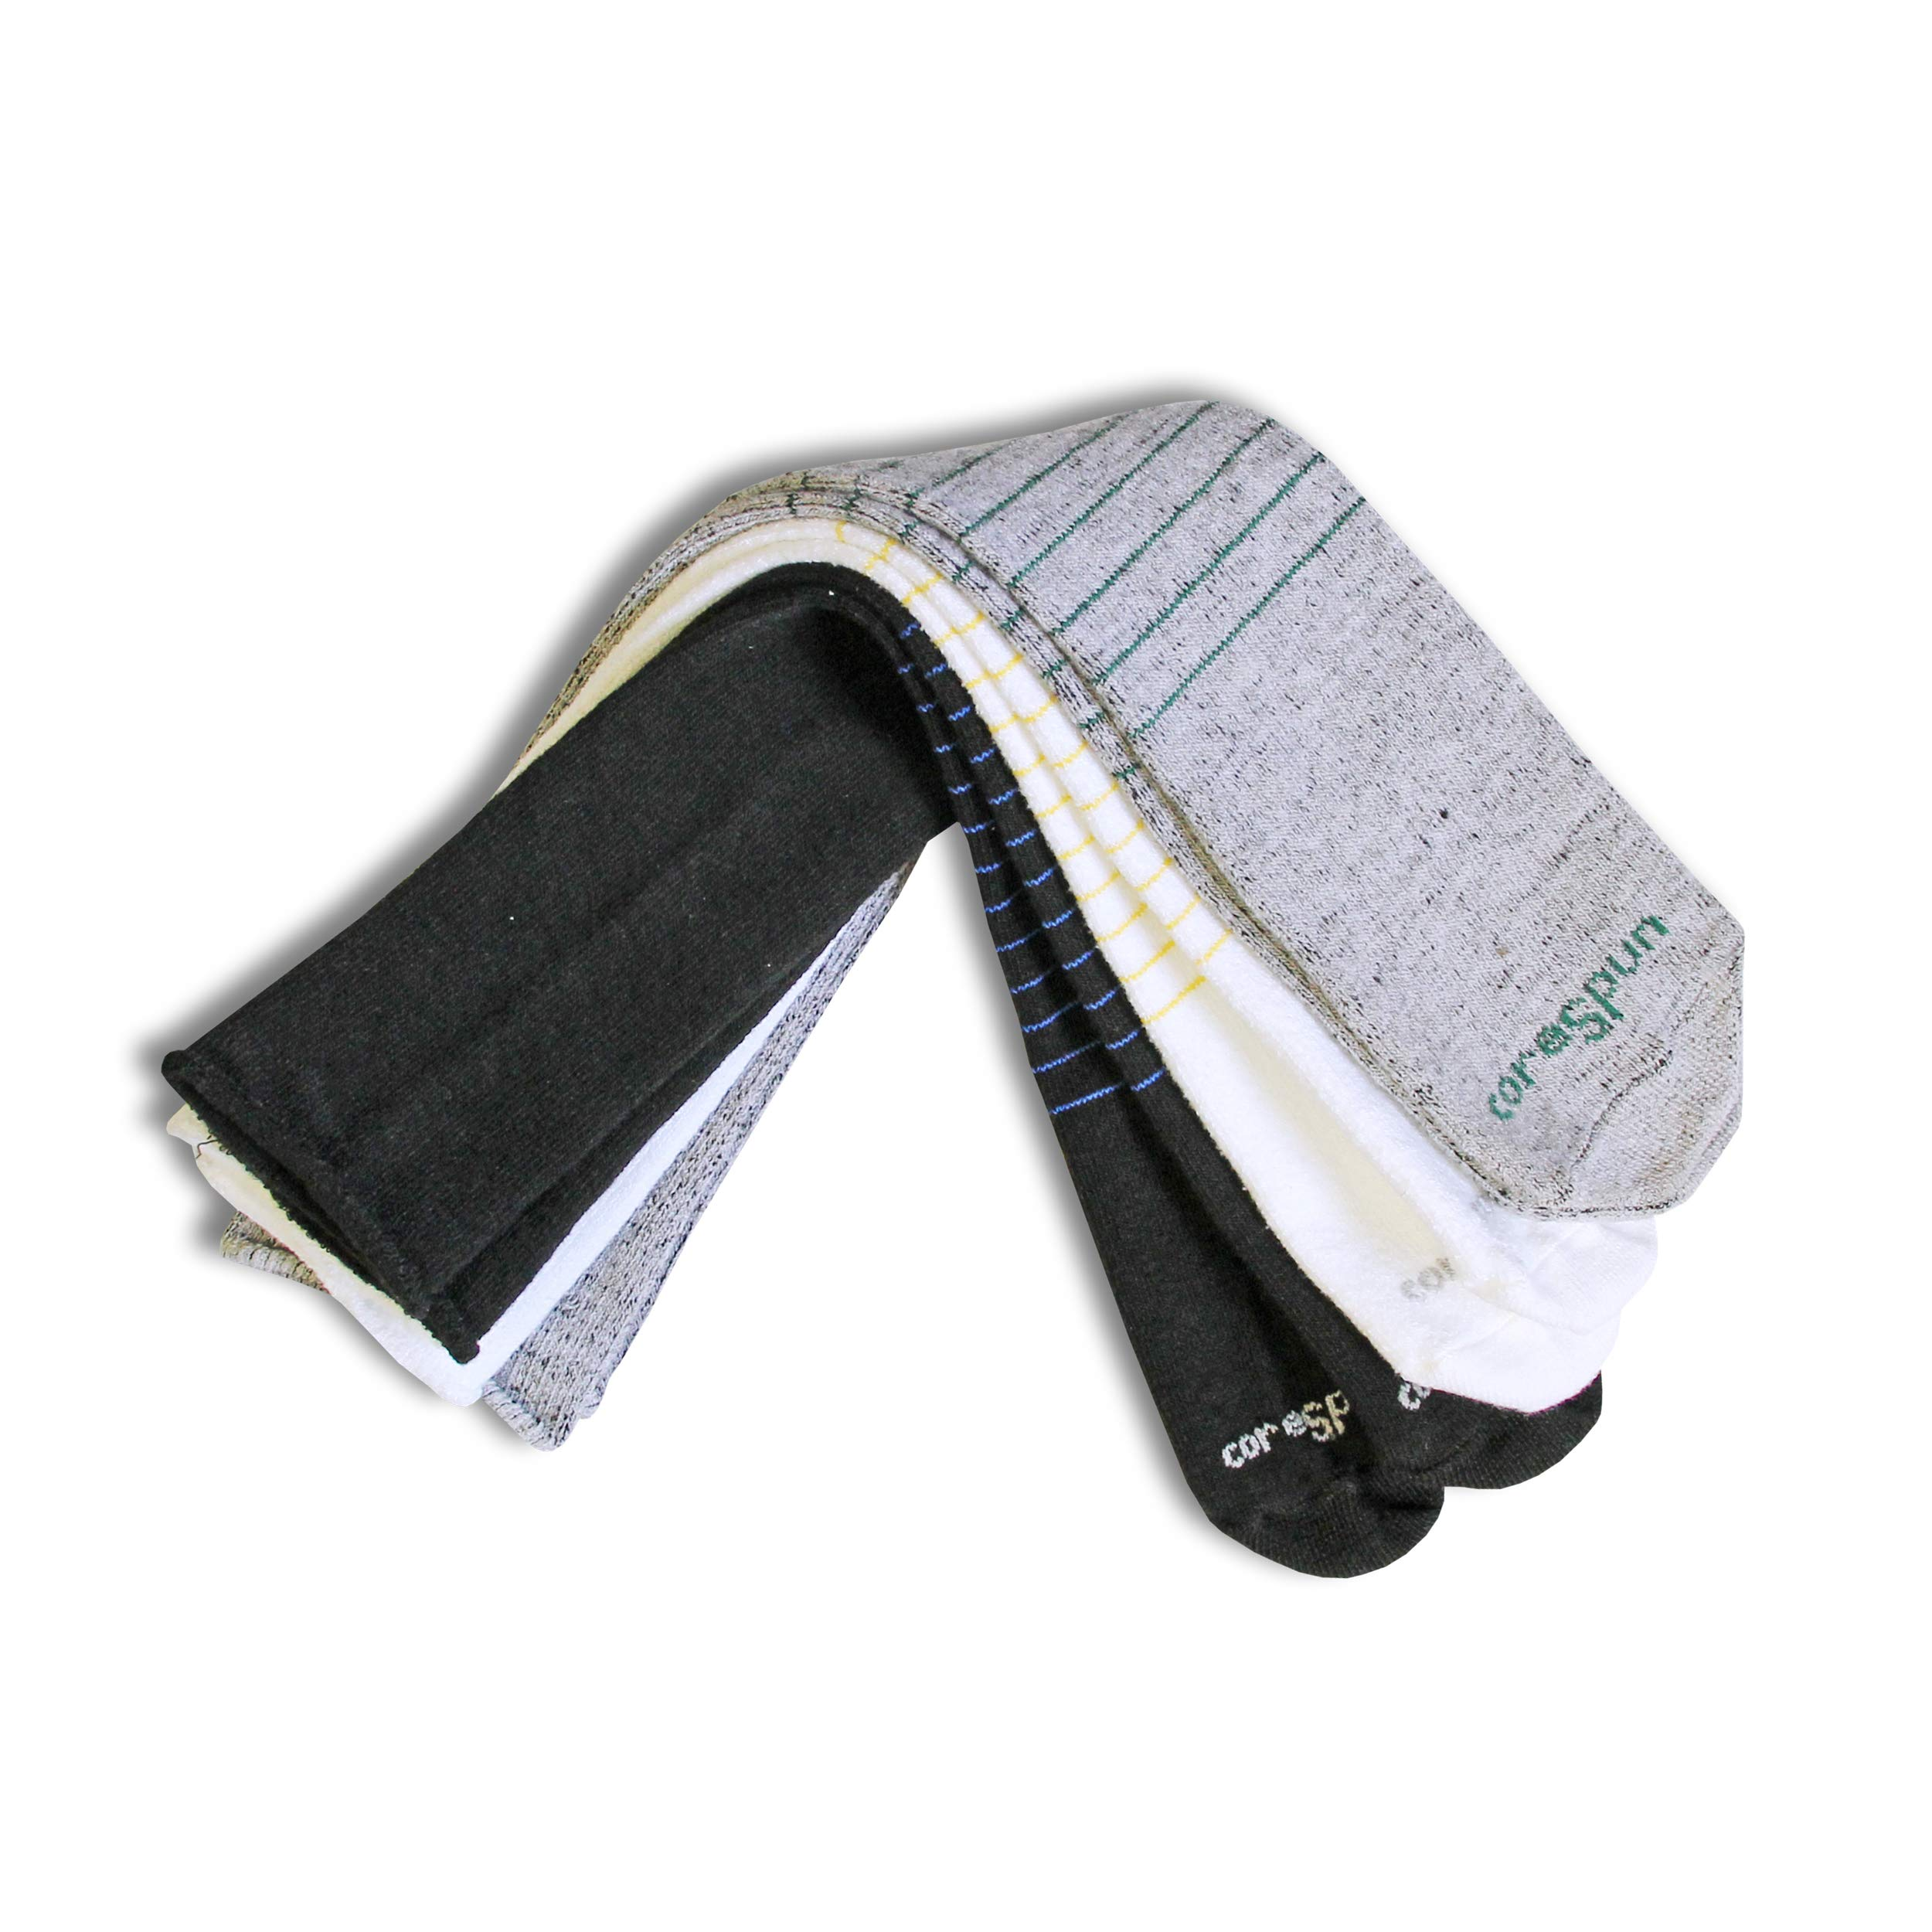 Core-Spun Patterned Child AFO Socks by SmartKnit®- Halos 3 Pack - White/Grey/Black - Child X-Long by Core-spun